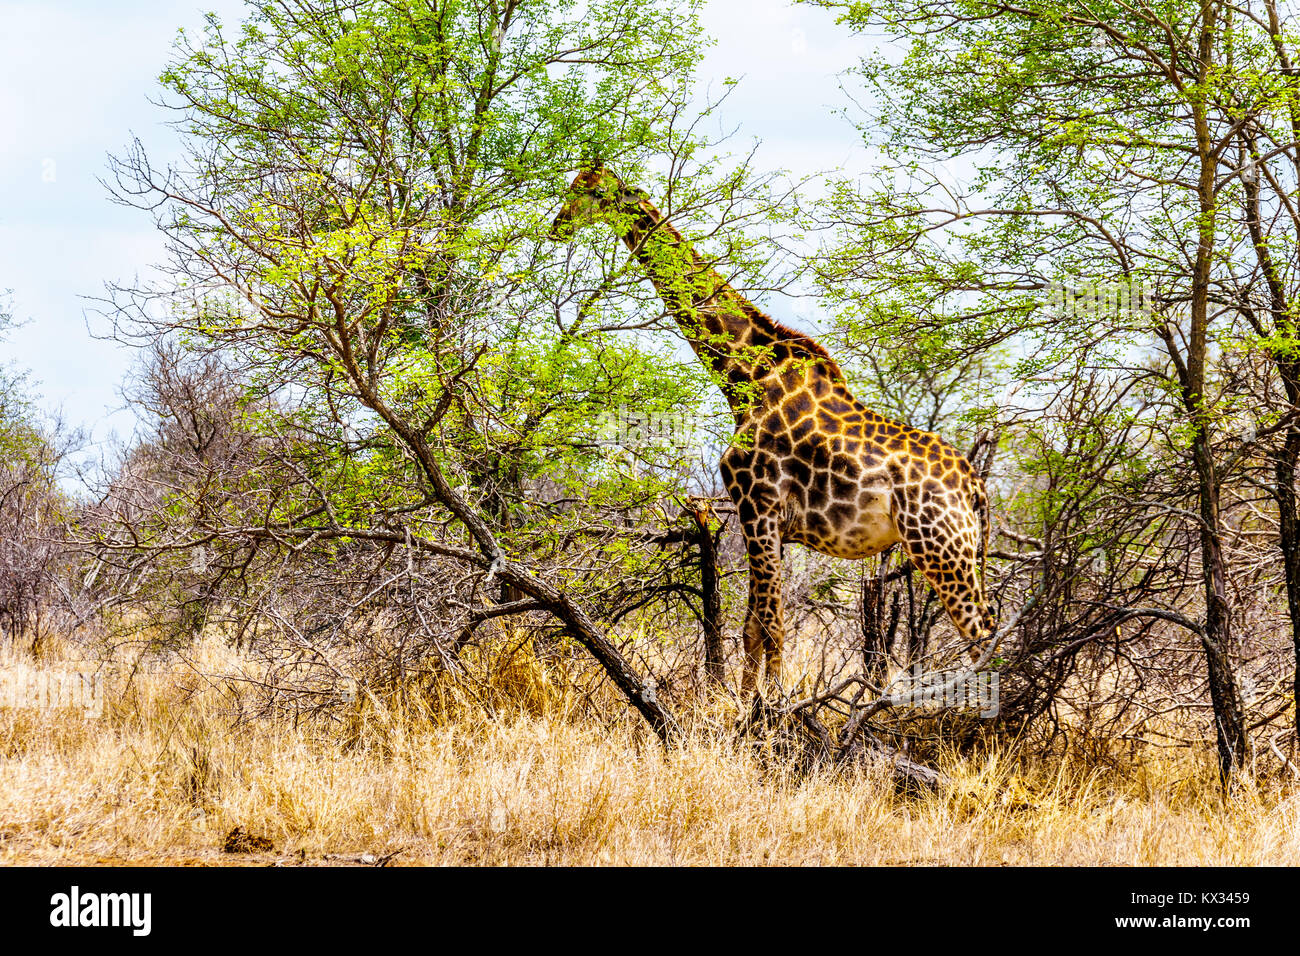 Giraffe eating the leafs of the few green trees in the drought stricken savanna area of central Kruger National - Stock Image